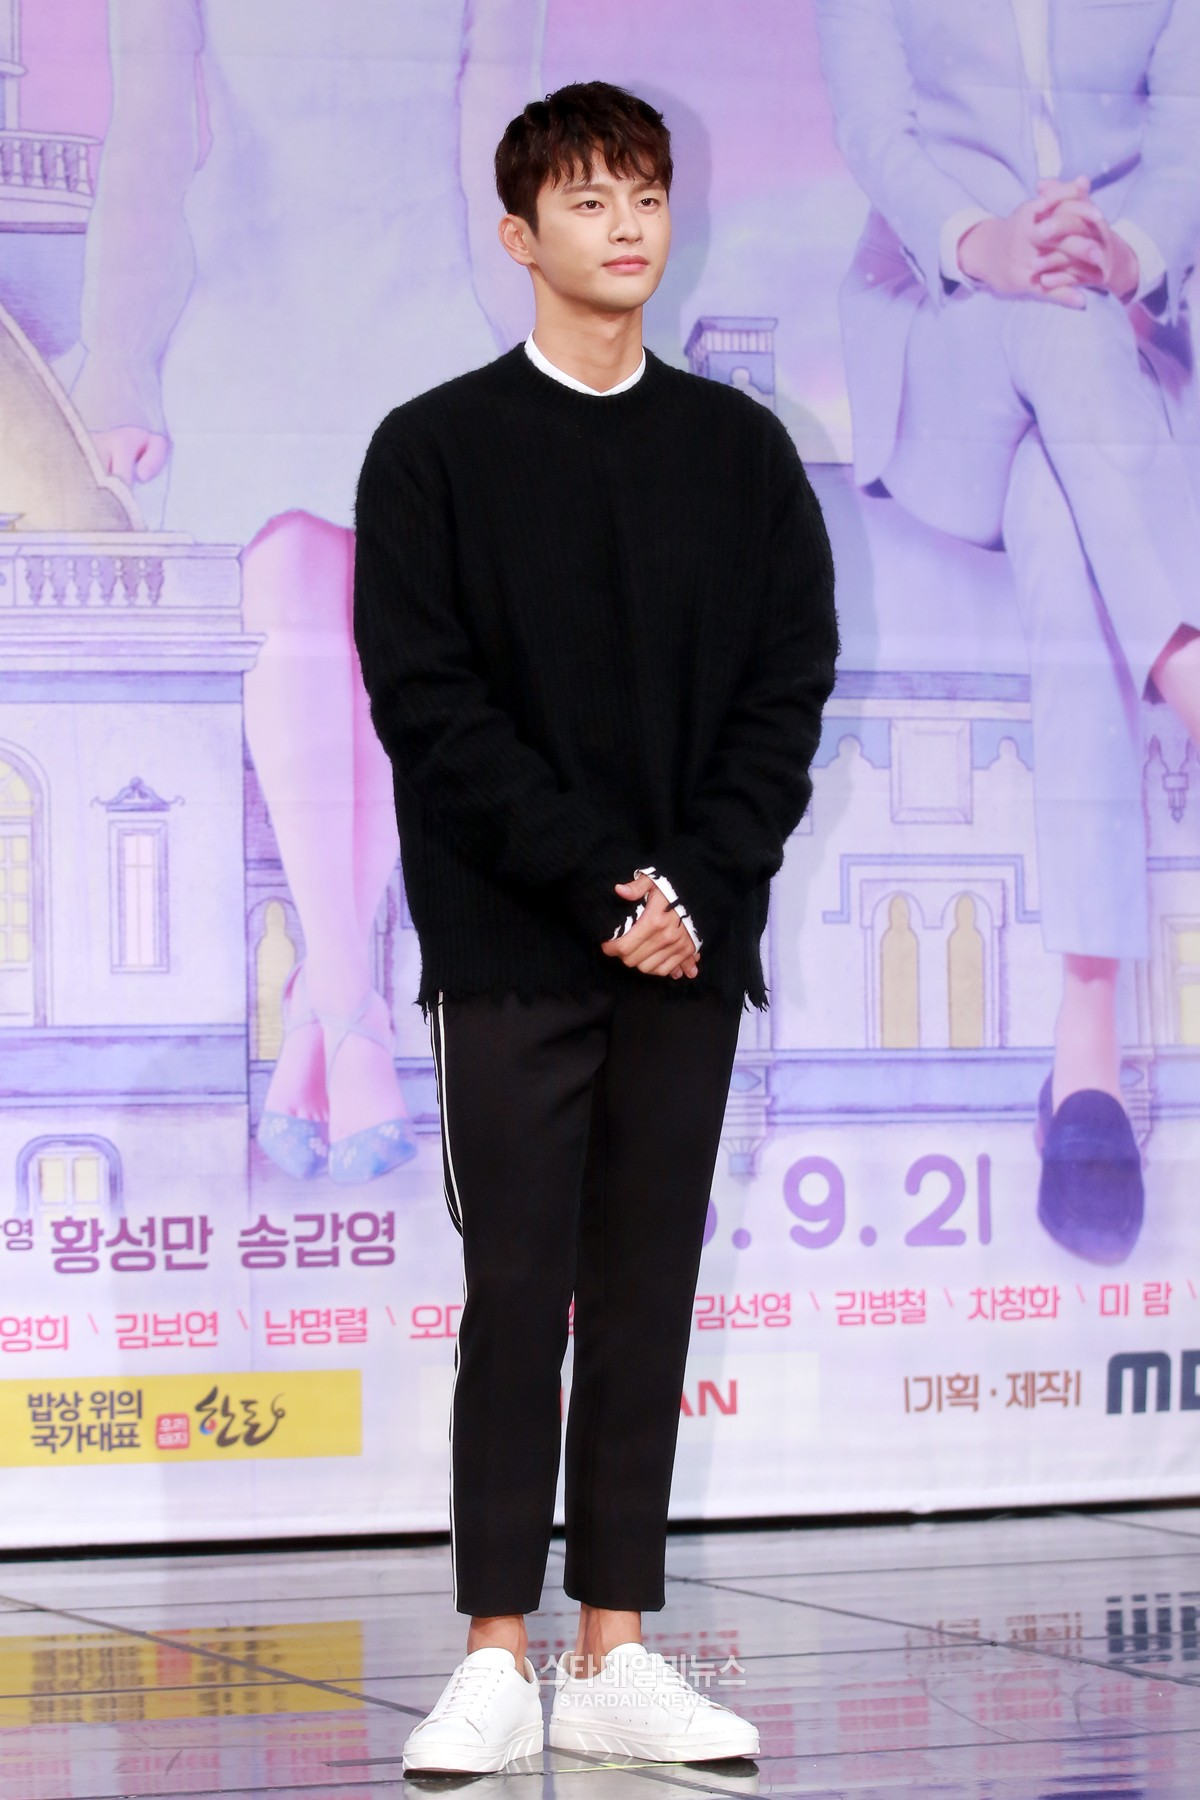 """Seo In Guk Raises Anticipation For Upcoming Drama """"Shopping King Louie"""""""